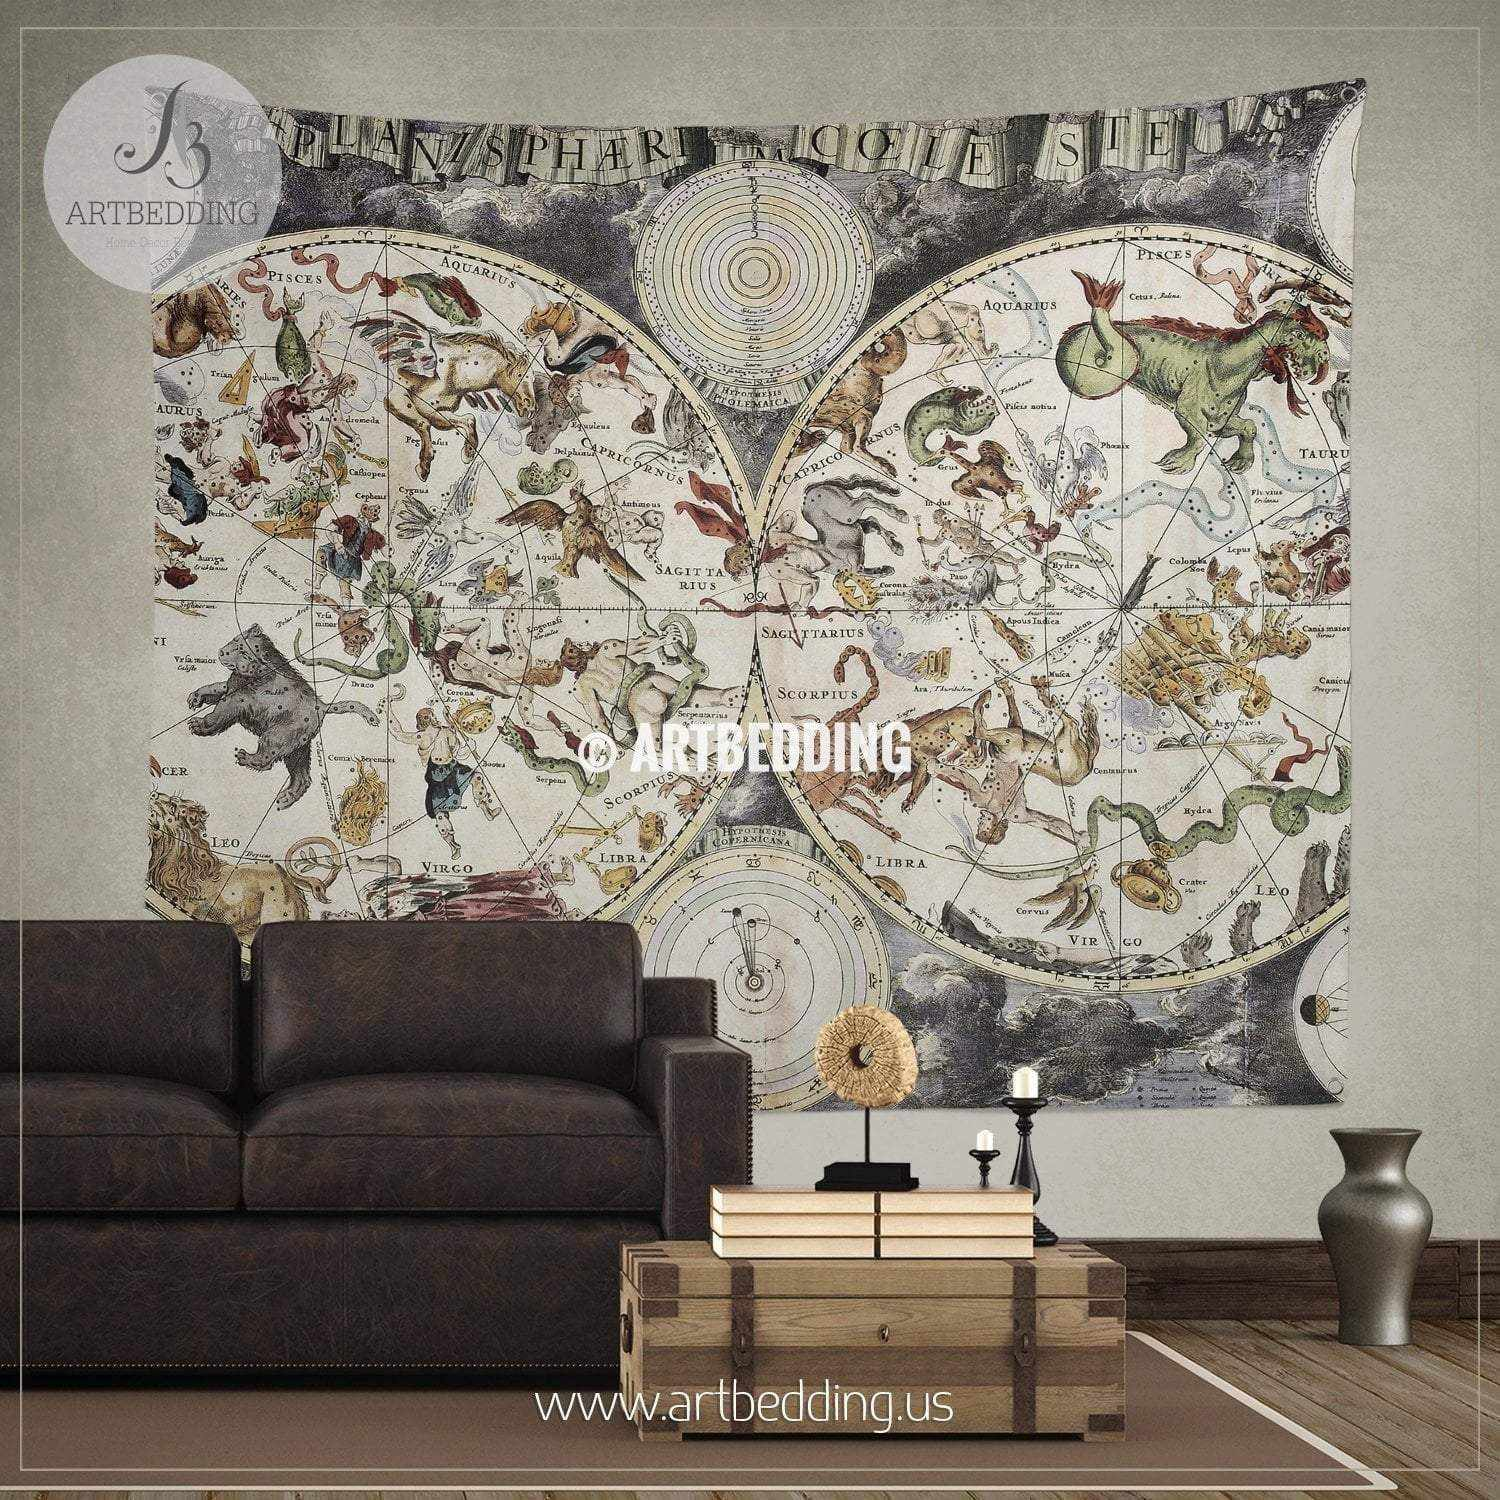 Old Sky Map Depicting Boreal And Austral Hemispheres With Constellations Zodiac Signs Wall Tapestry